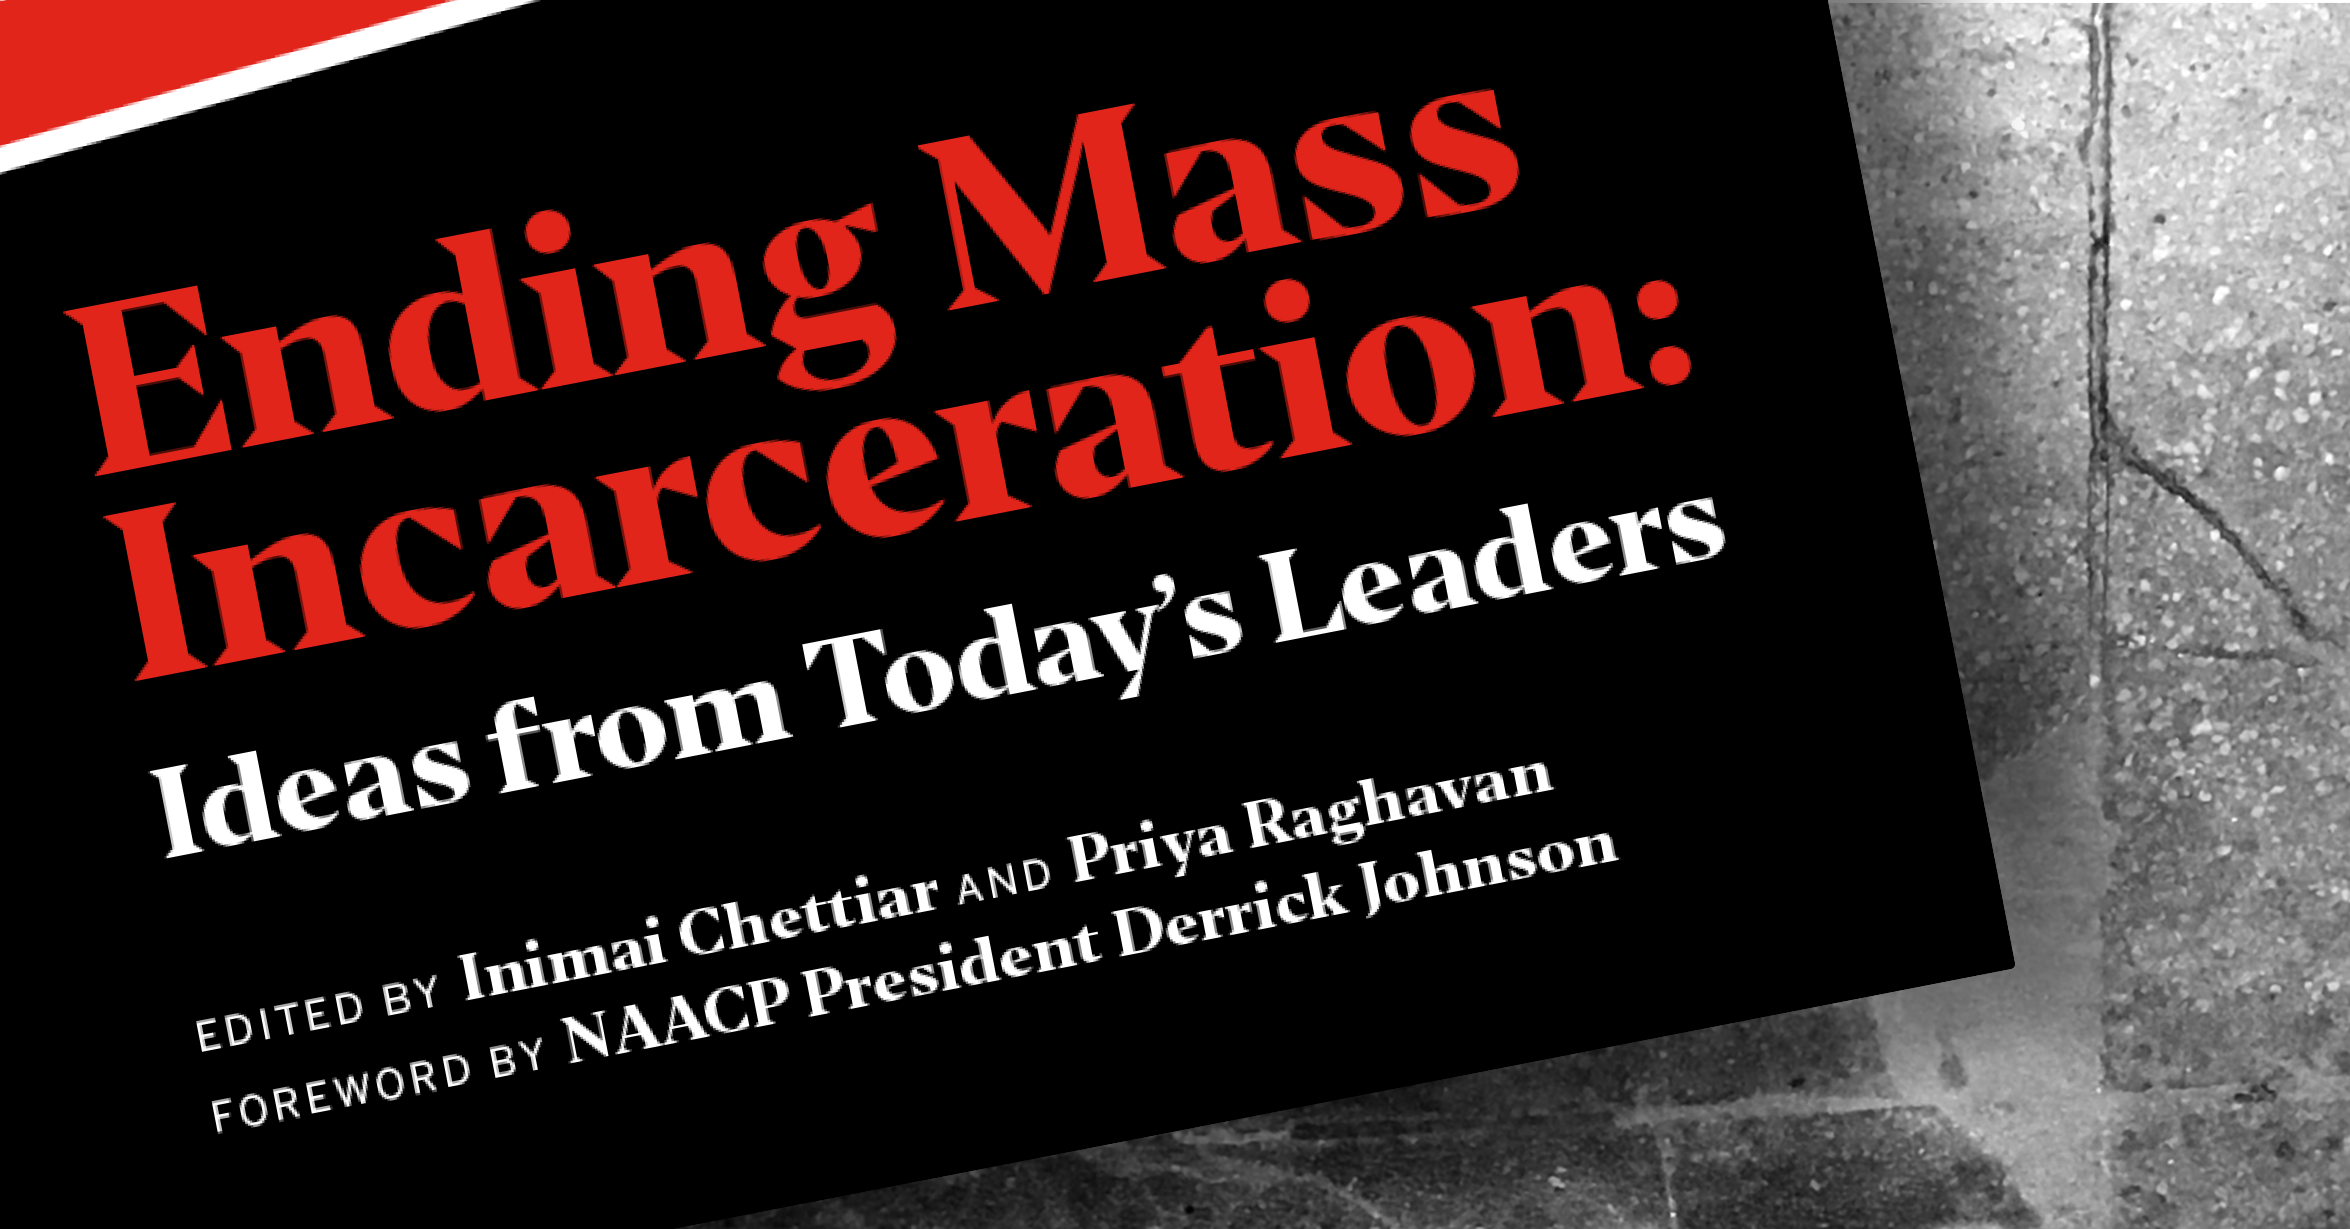 Efforts Underway To Fully Fund Idea >> Ending Mass Incarceration Ideas From Today S Leaders Brennan